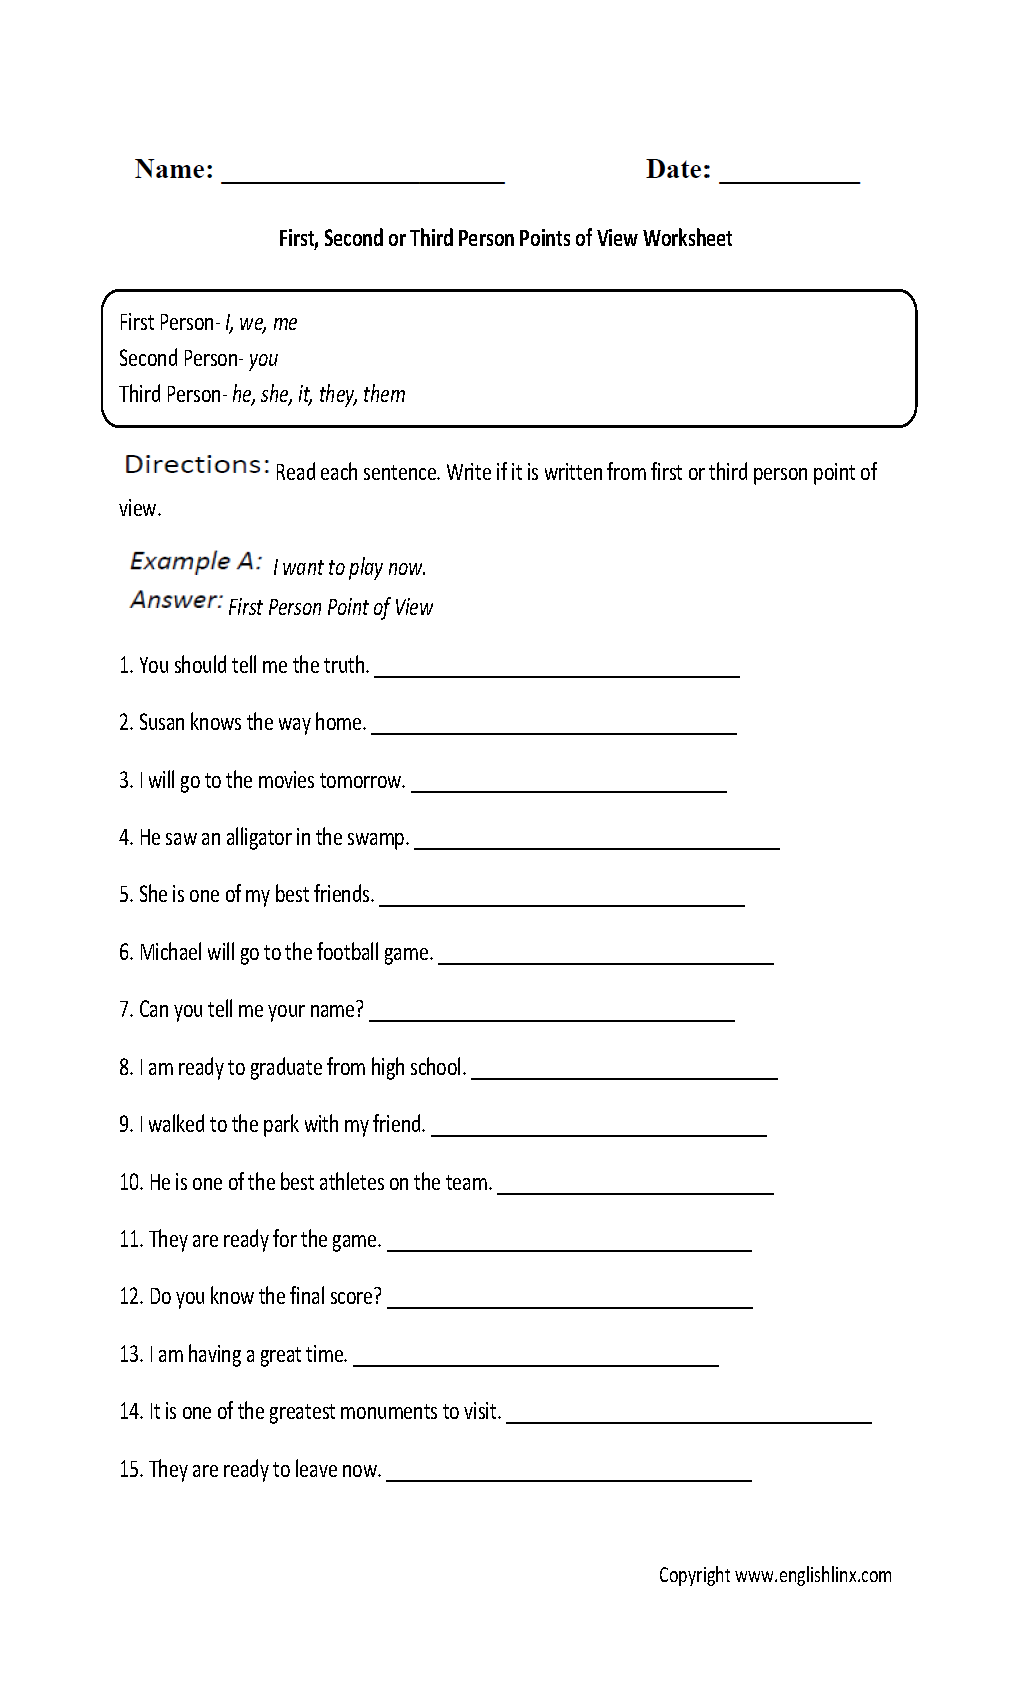 Englishlinx.com   Point of View Worksheets   Language arts worksheets [ 1694 x 1012 Pixel ]